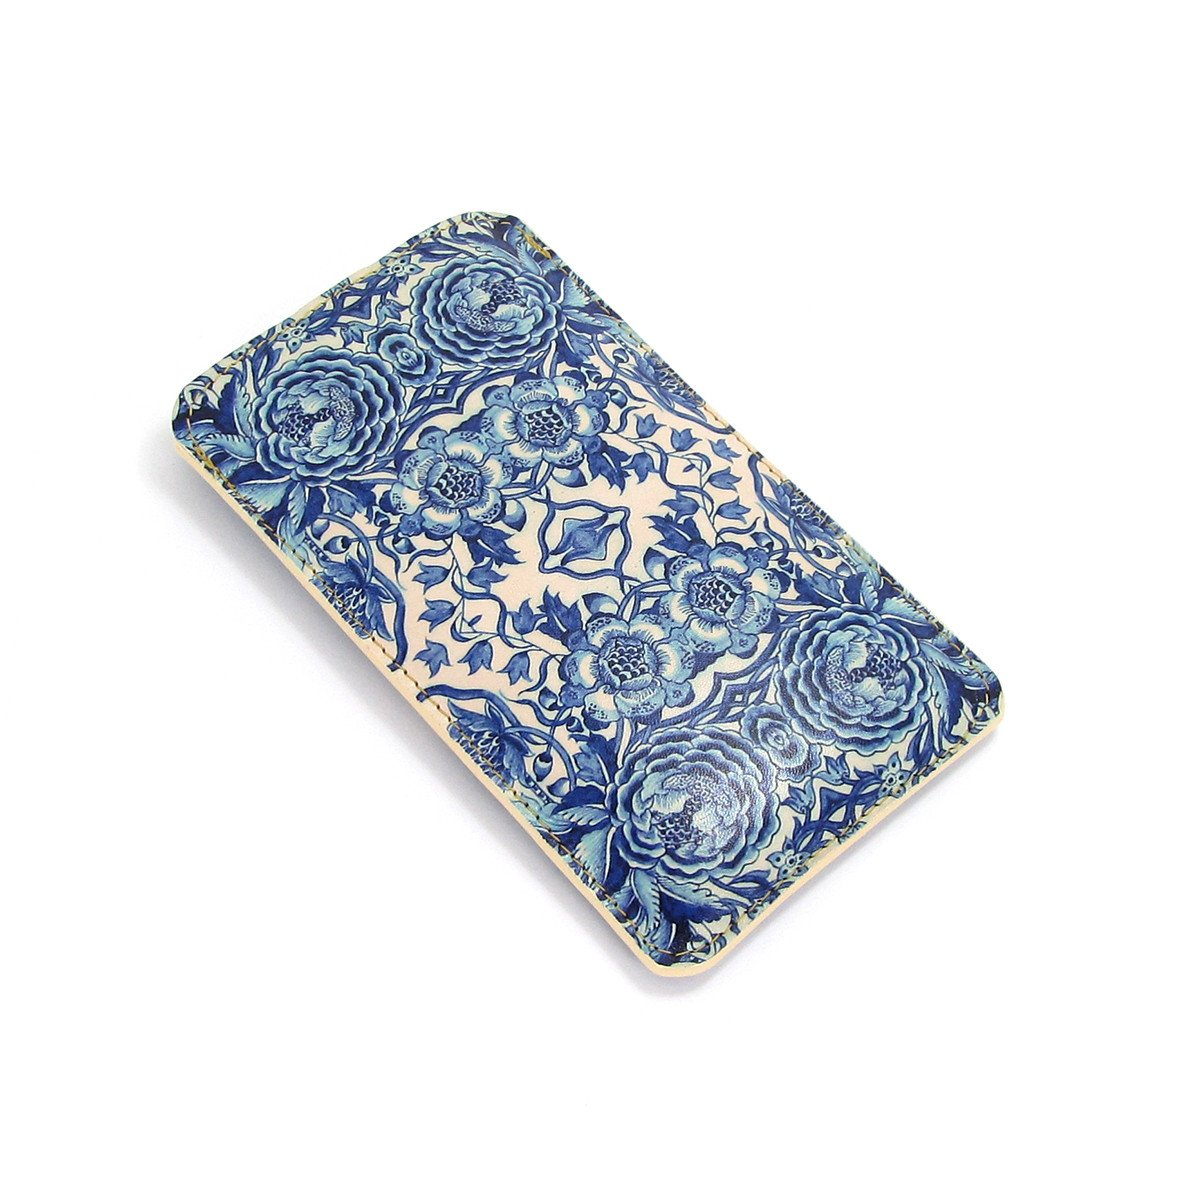 Leather Phone Case Sleeve - Blue & White Porcelain Phone case Tovi Sorga iPhone 5/5s/5c Blue No personalisation